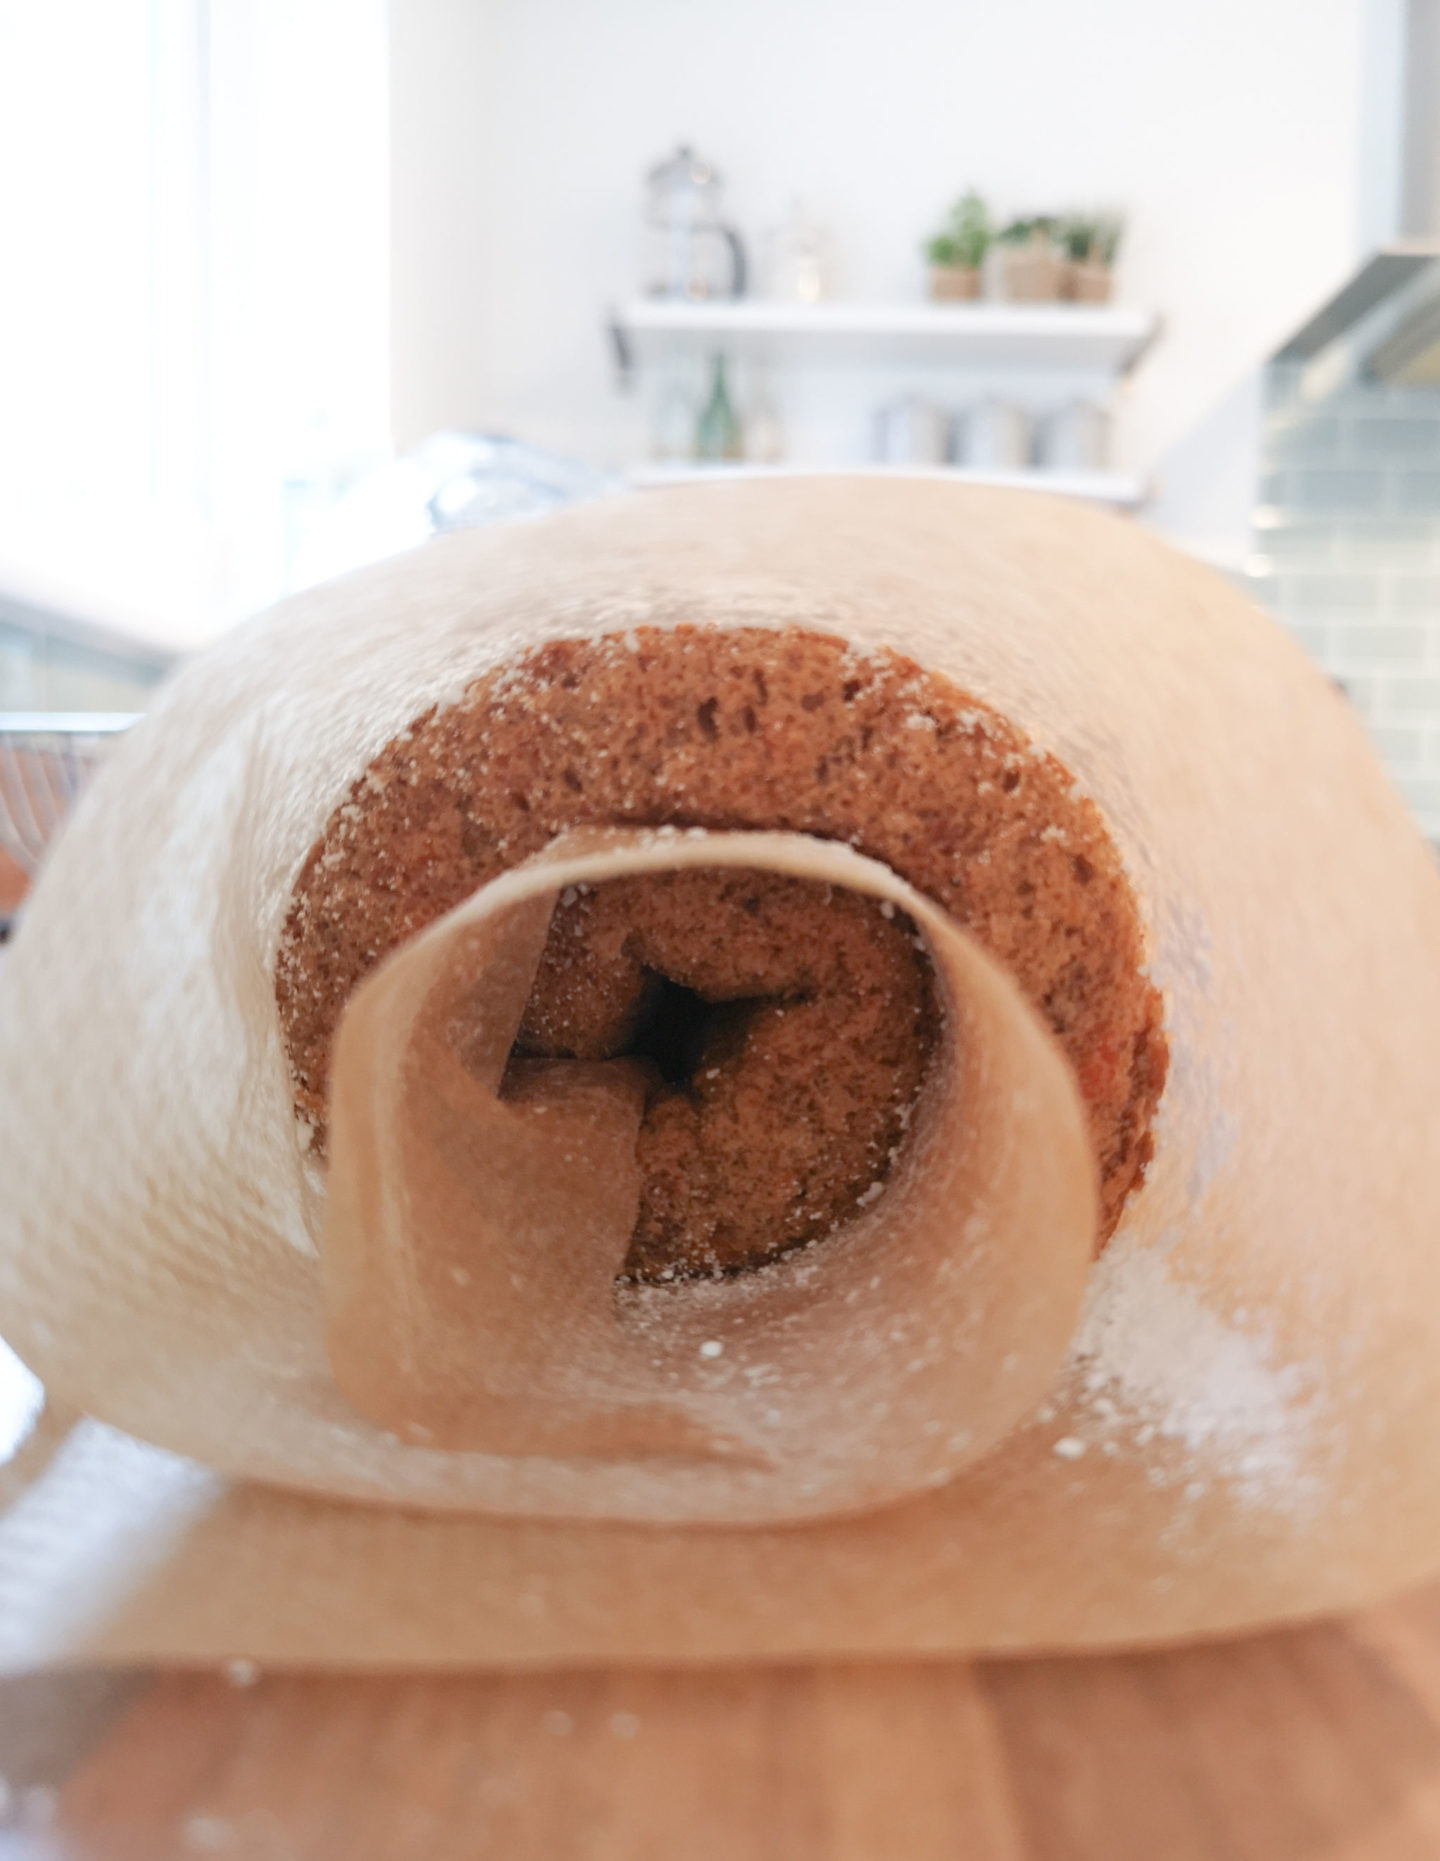 Carrot cake Swiss roll rolled up in baking paper